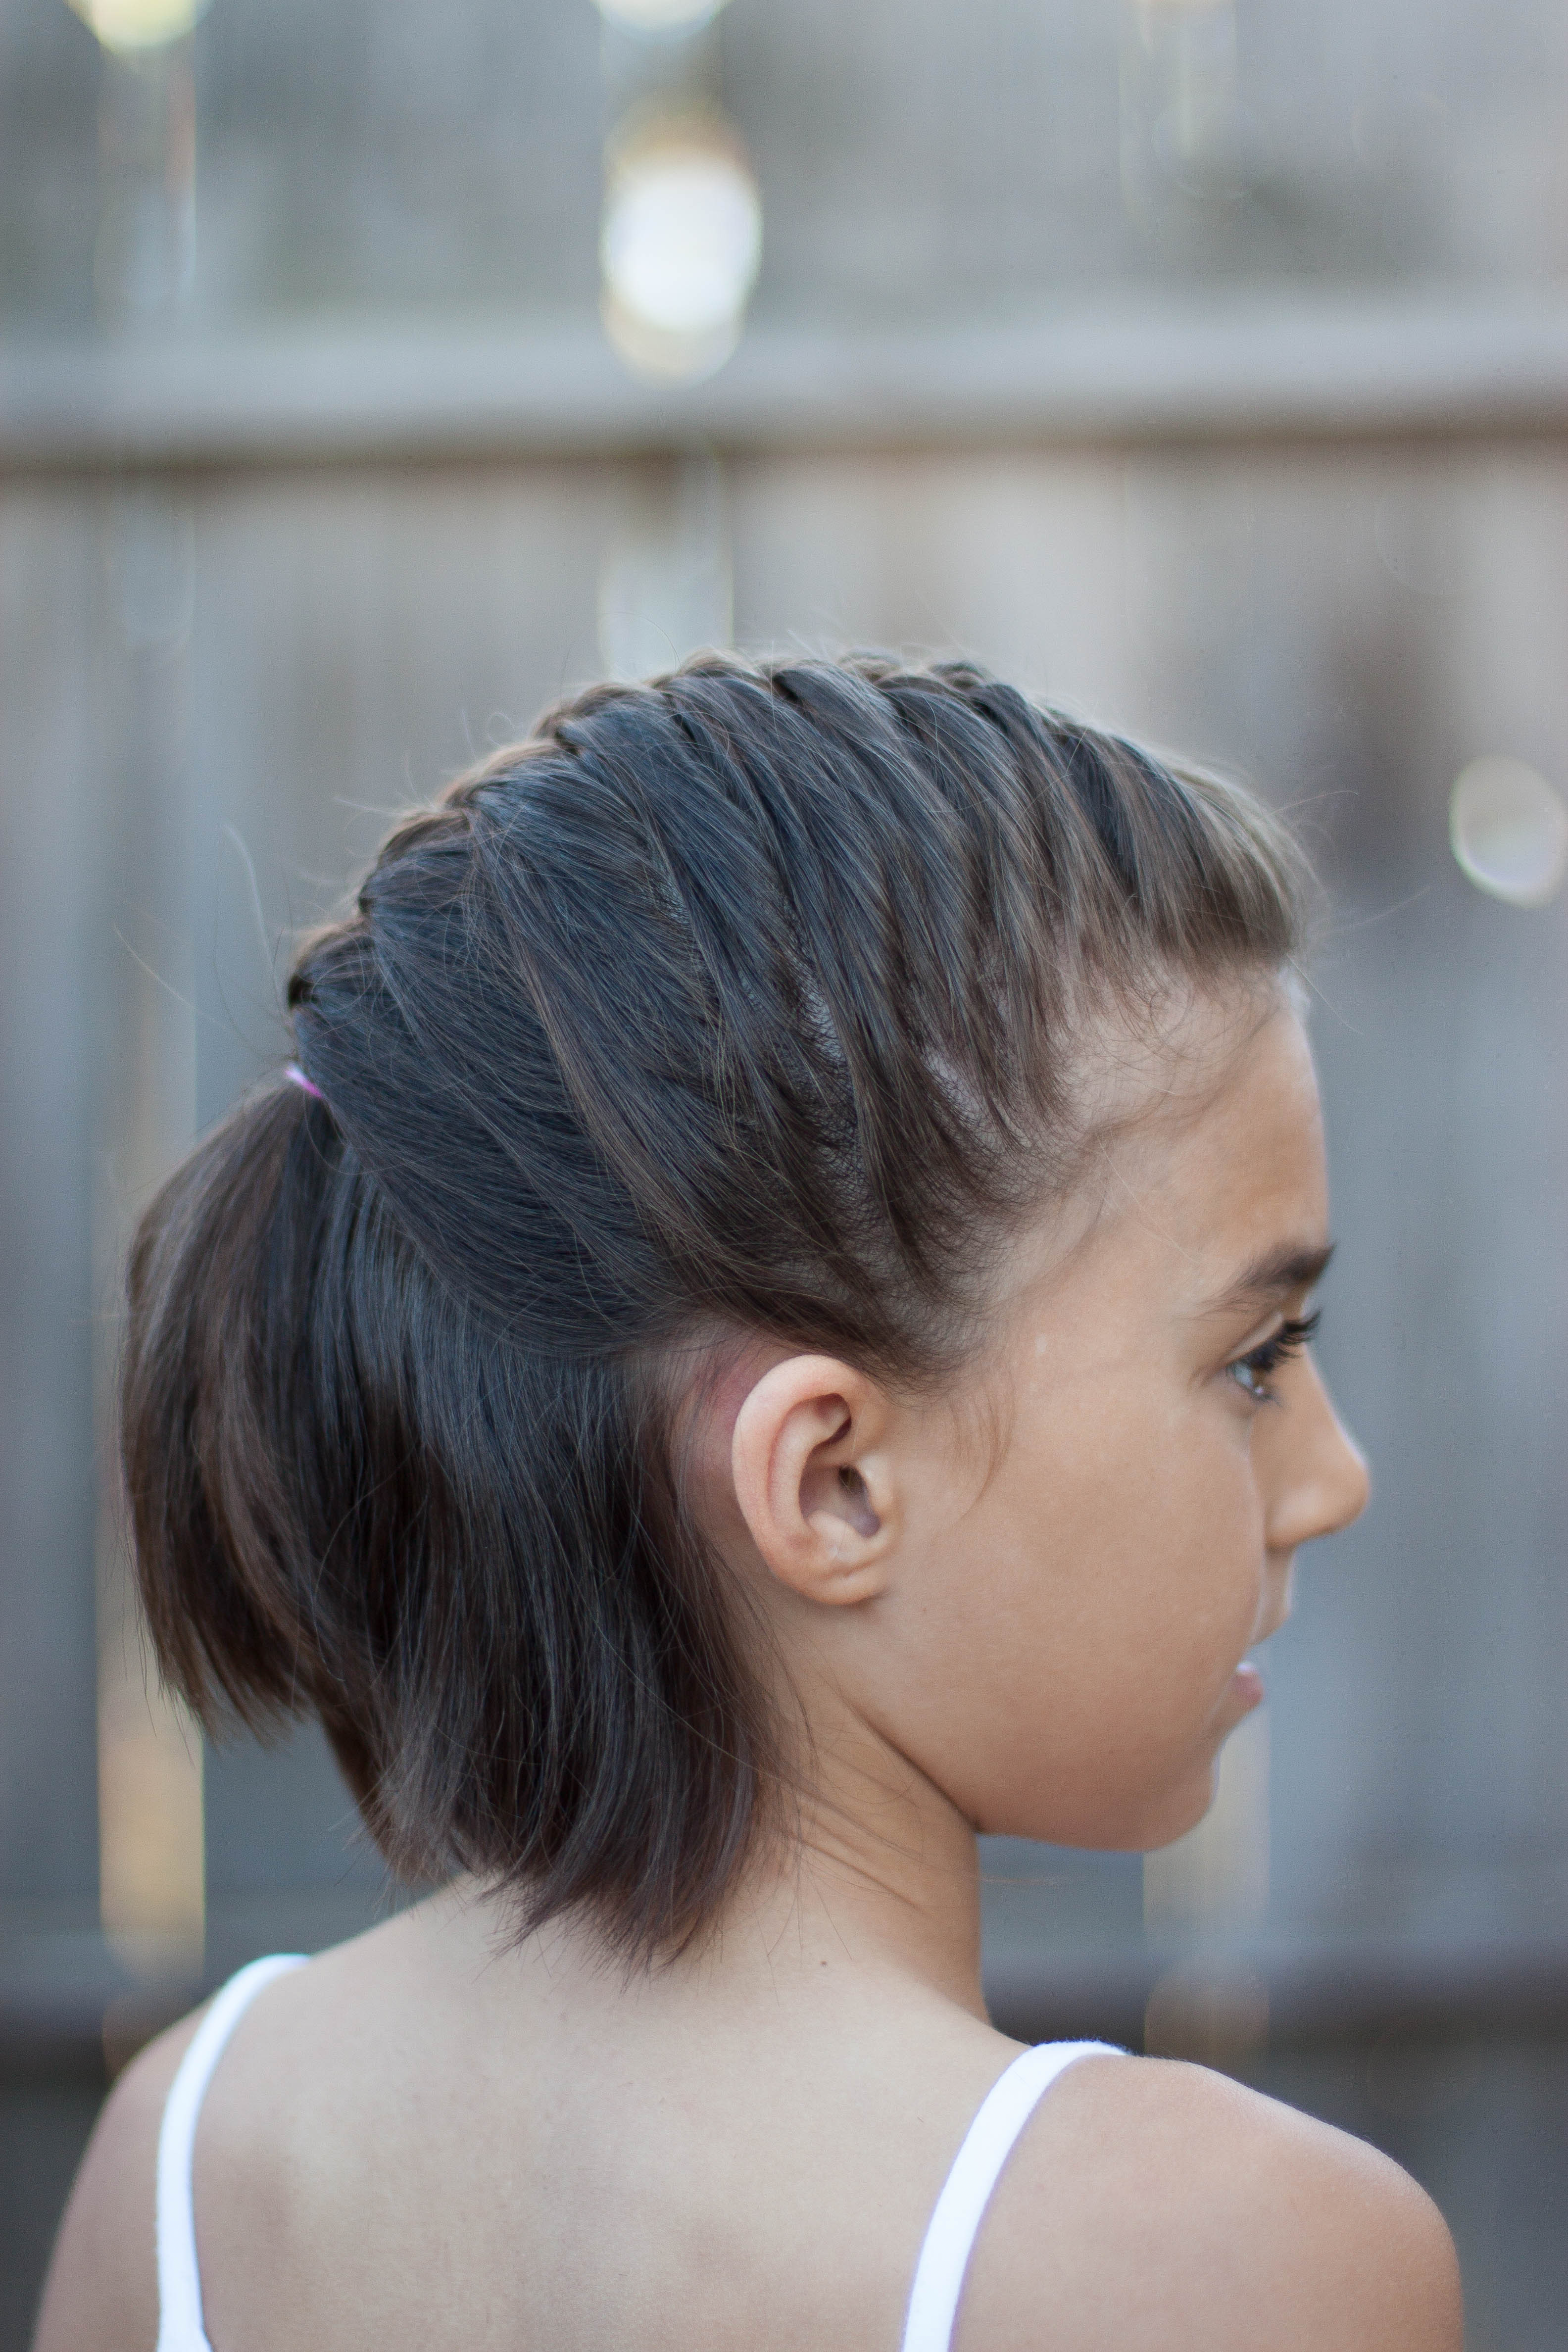 Best ideas about Cute Short Haircuts For Kids . Save or Pin 5 Braids for Short Hair Now.